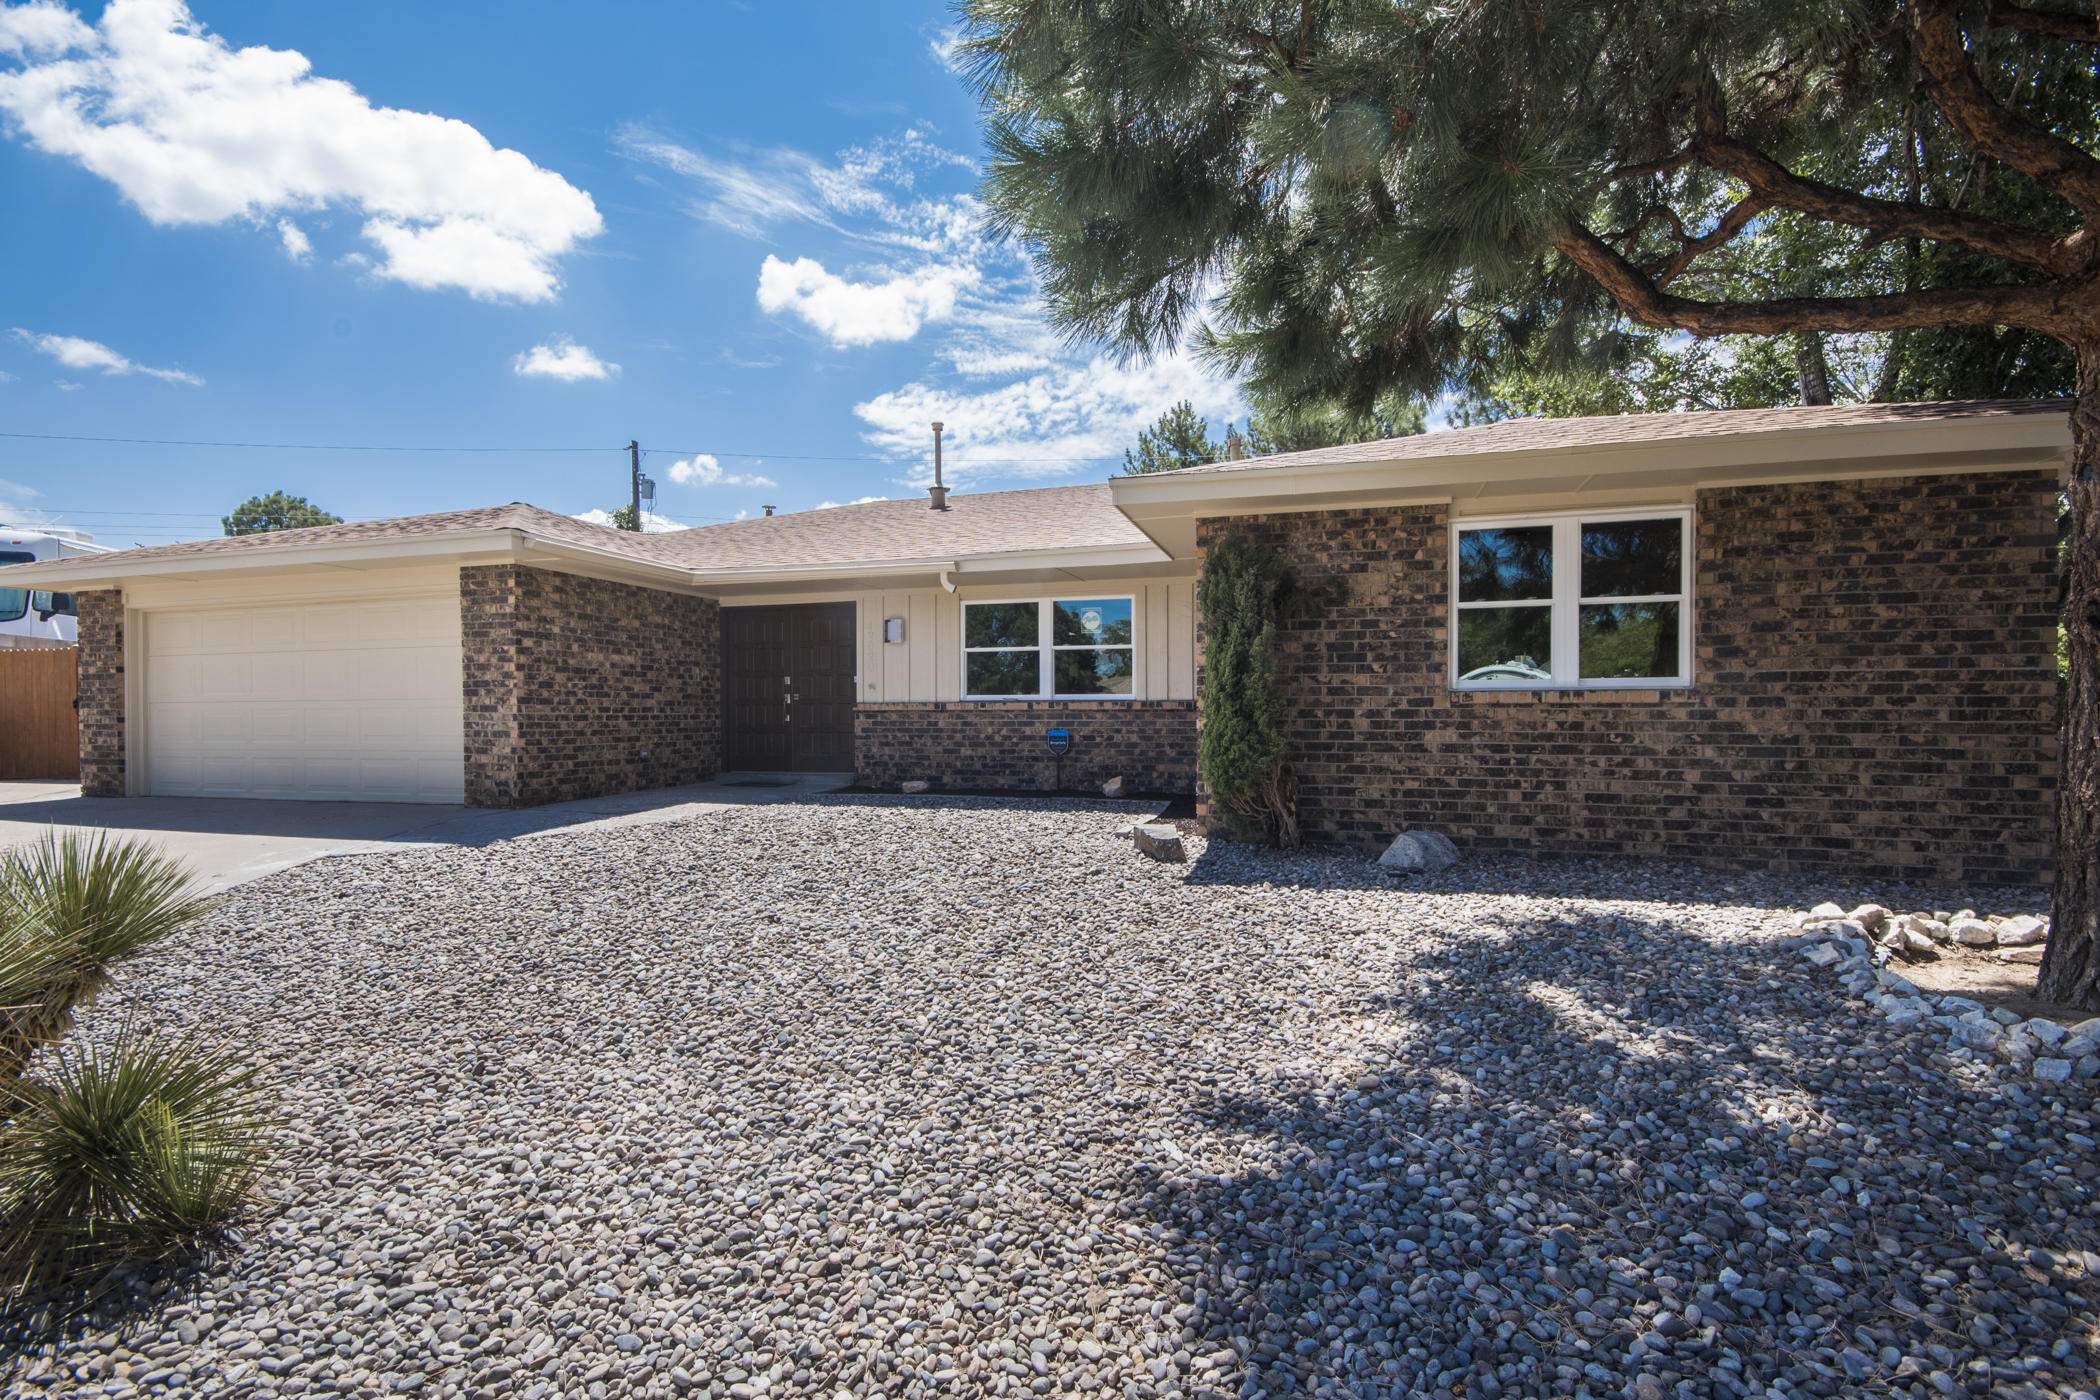 Lovely ranch home in NE ABQ. Hard-Floor surfacing throughout. Beautifully remodeled kitchen featuring mocha cabinets, quartz counter tops, and SS appliances. Fully remodeled bathrooms in 2018 with custom tile, new cabinetry and all fixtures. Newer lighting, fixtures, hardware, fresh paint 2018. Newer Roof! Open and diverse floor plan w/ spacious rooms throughout. 3+ Living areas. 1 w/ custom bar area w/ wine-refrigerator and another perfectly setup for home office, HOME SCHOOLING, or what ever...  Lounge/office area in Master was a 4th Bedroom and can easily be converted back to a 4th bedroom.